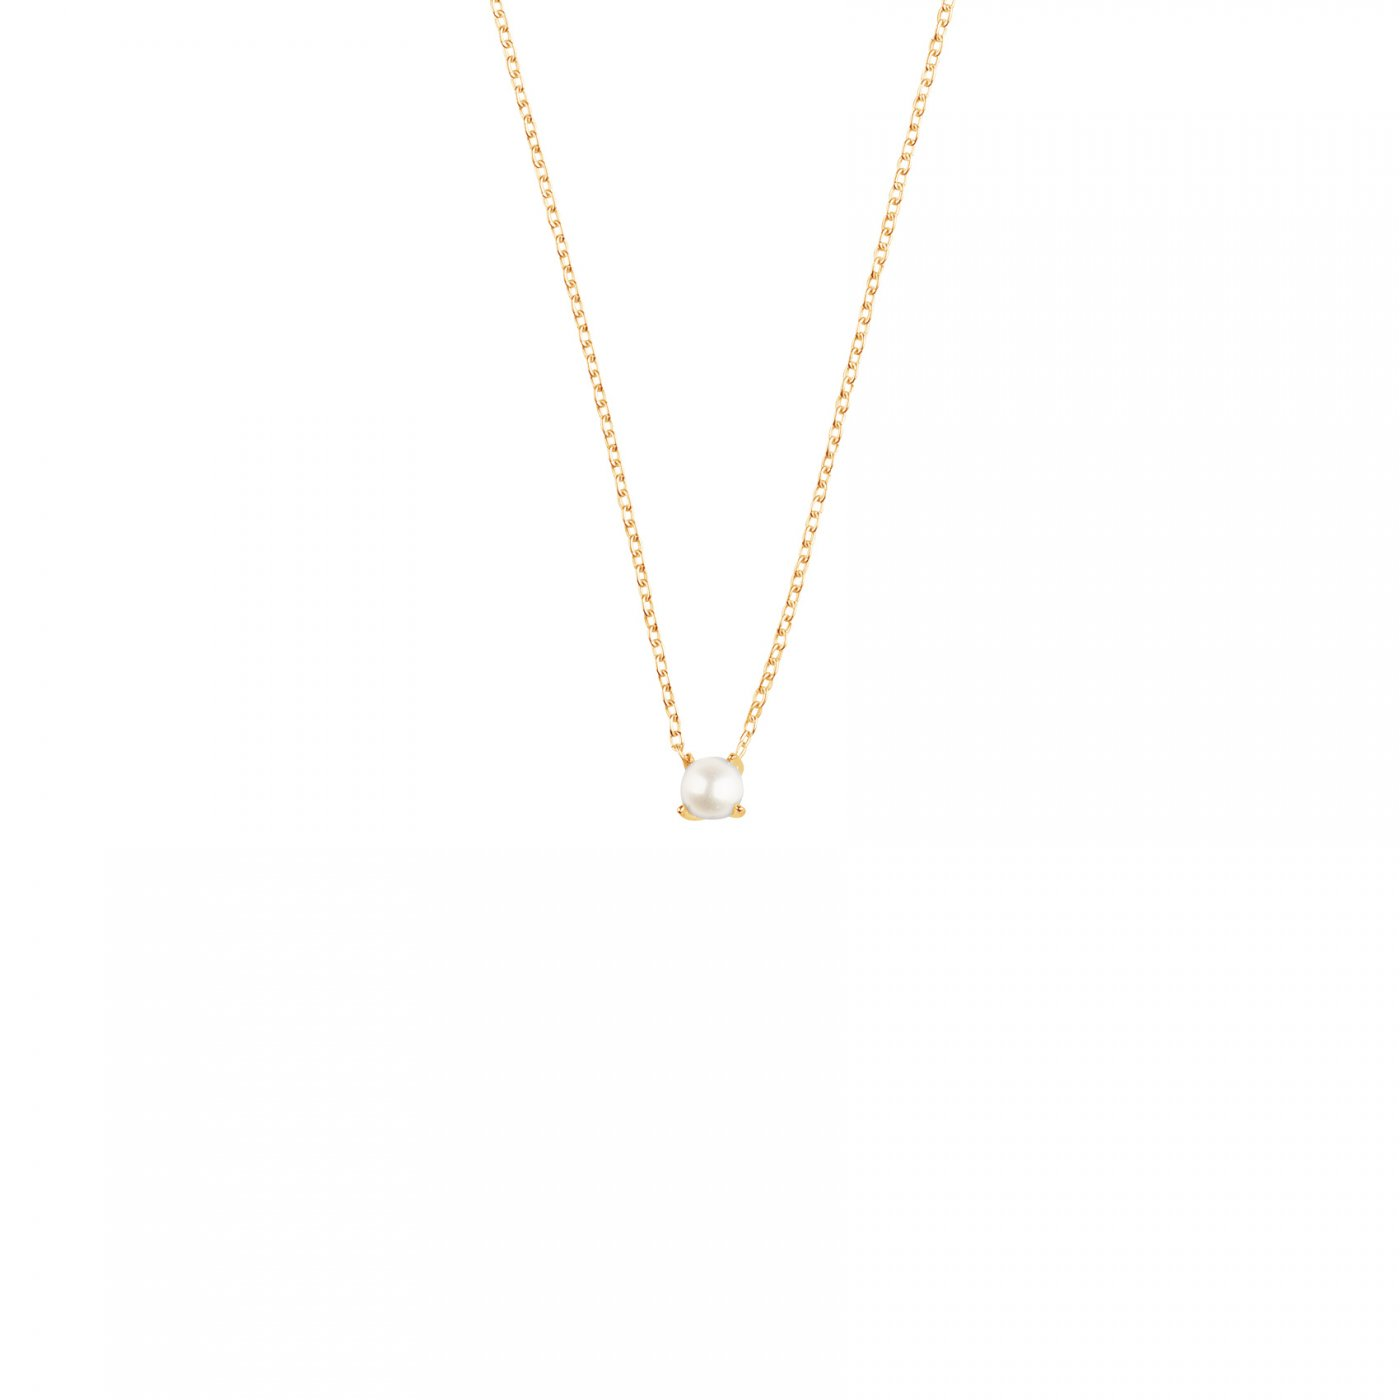 petite-pearl-necklace-gold-zoom-1400x1400